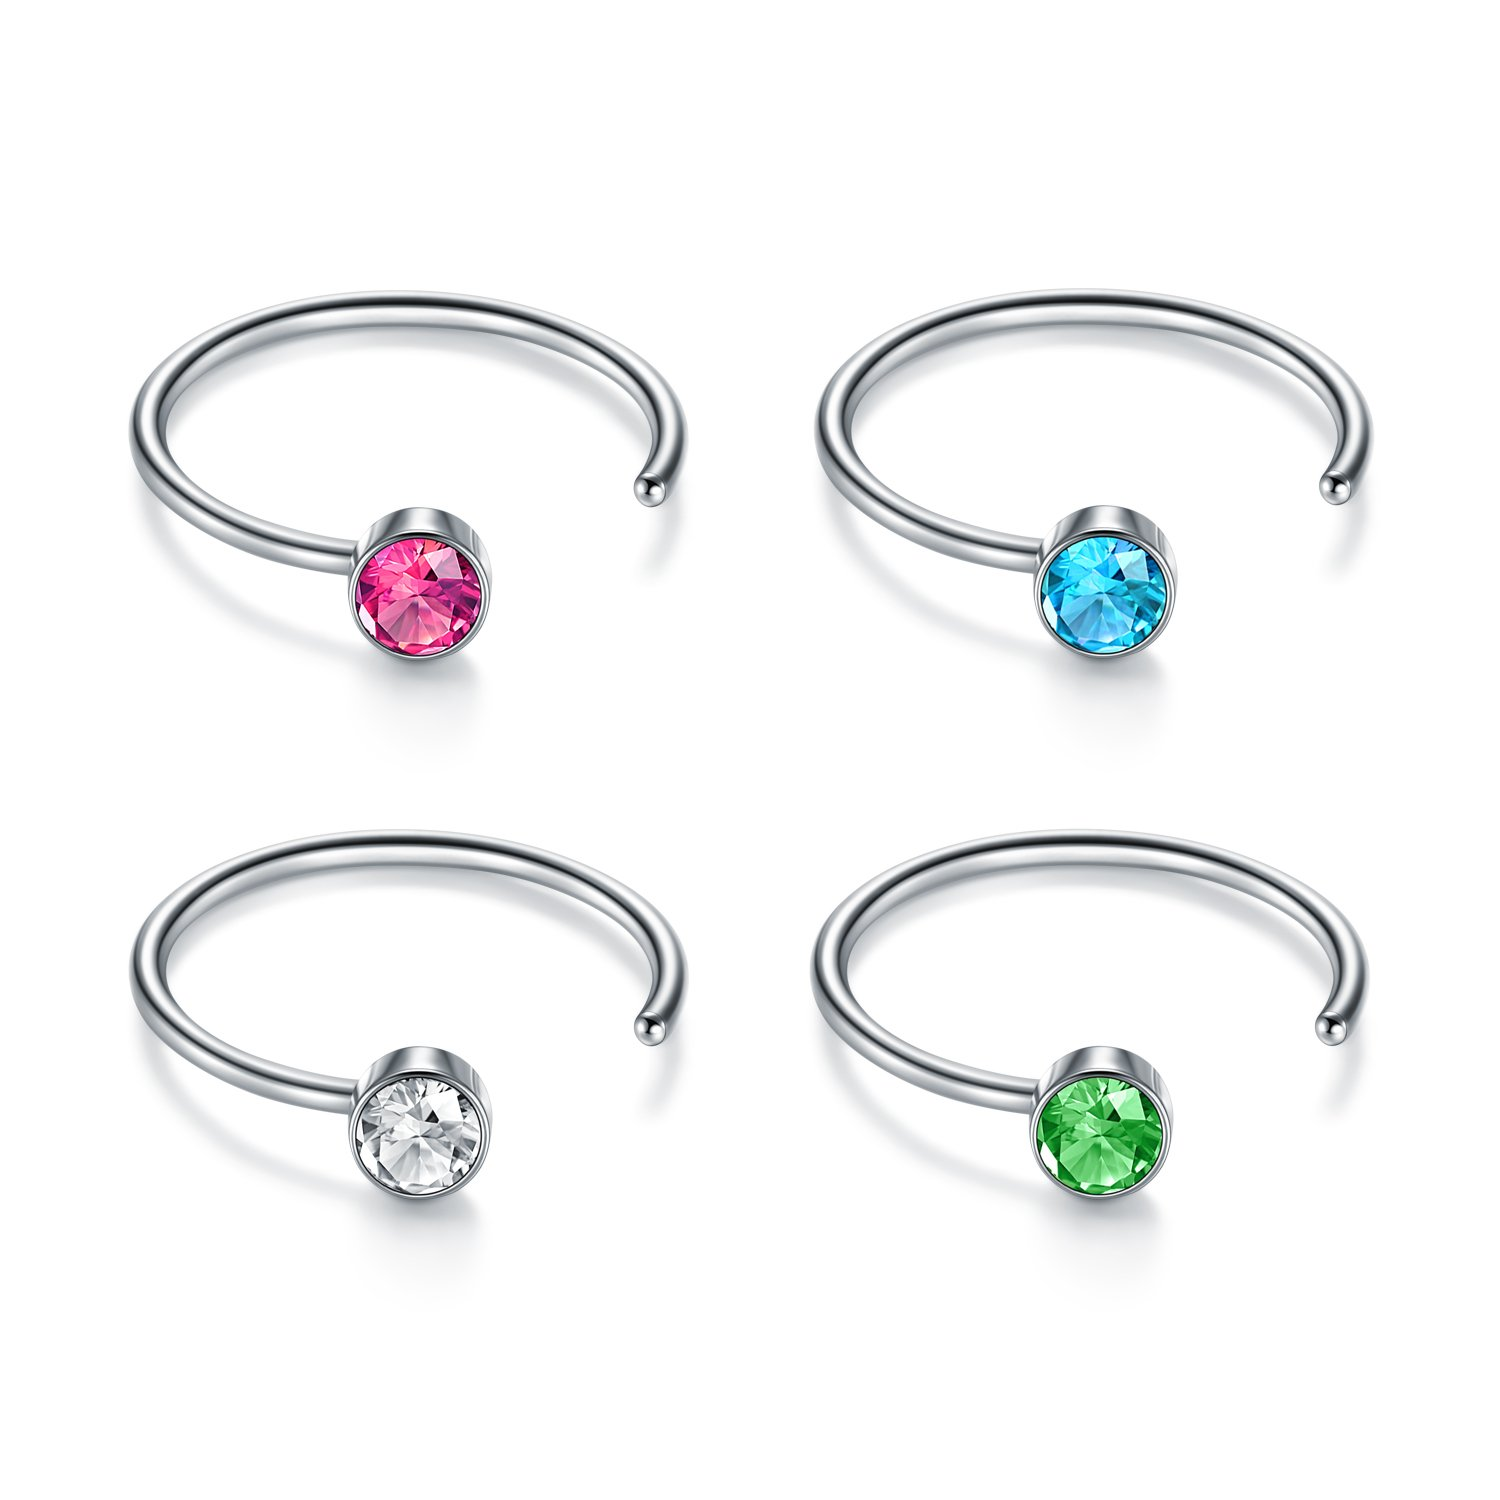 JFORYOU Nose Rings 22G 316L Surgical Steel Faux Nose Ring Nose Hoop with Rhinestone 4Pcs JFORYOU Jewelry 2ABD11LL-BH004B